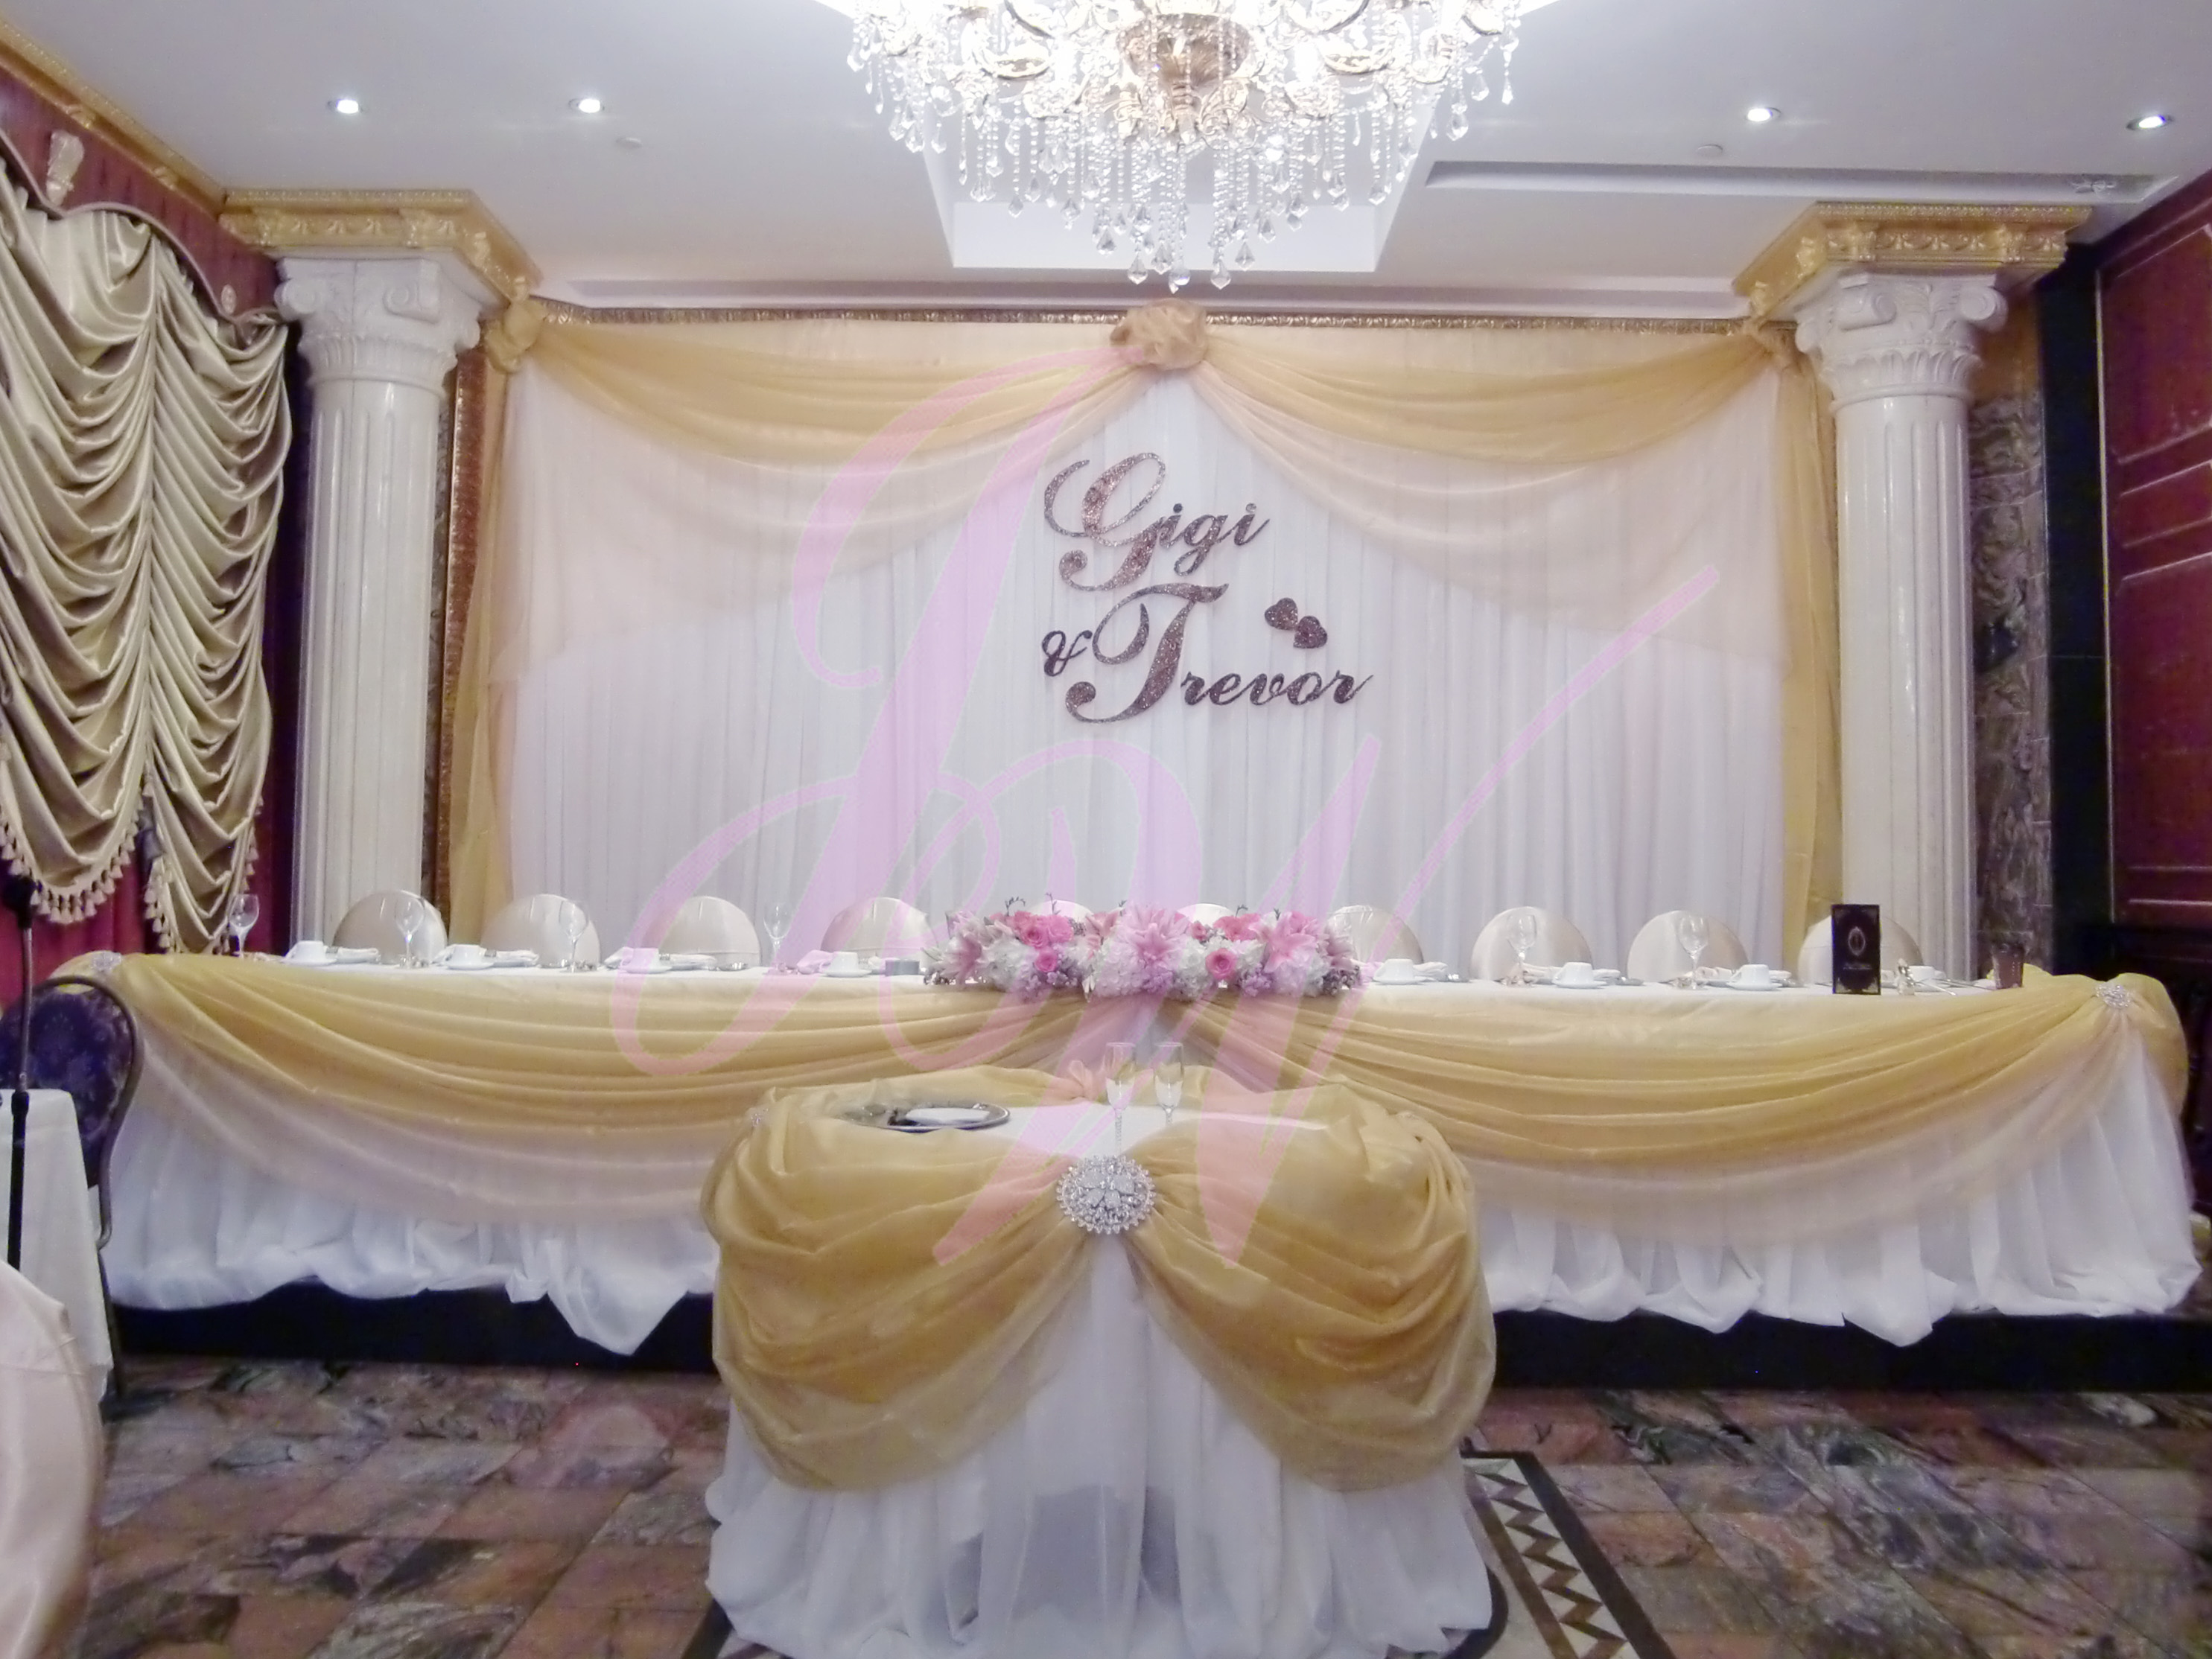 Joyce wedding service backdrop d cor for Backdrops wedding decoration